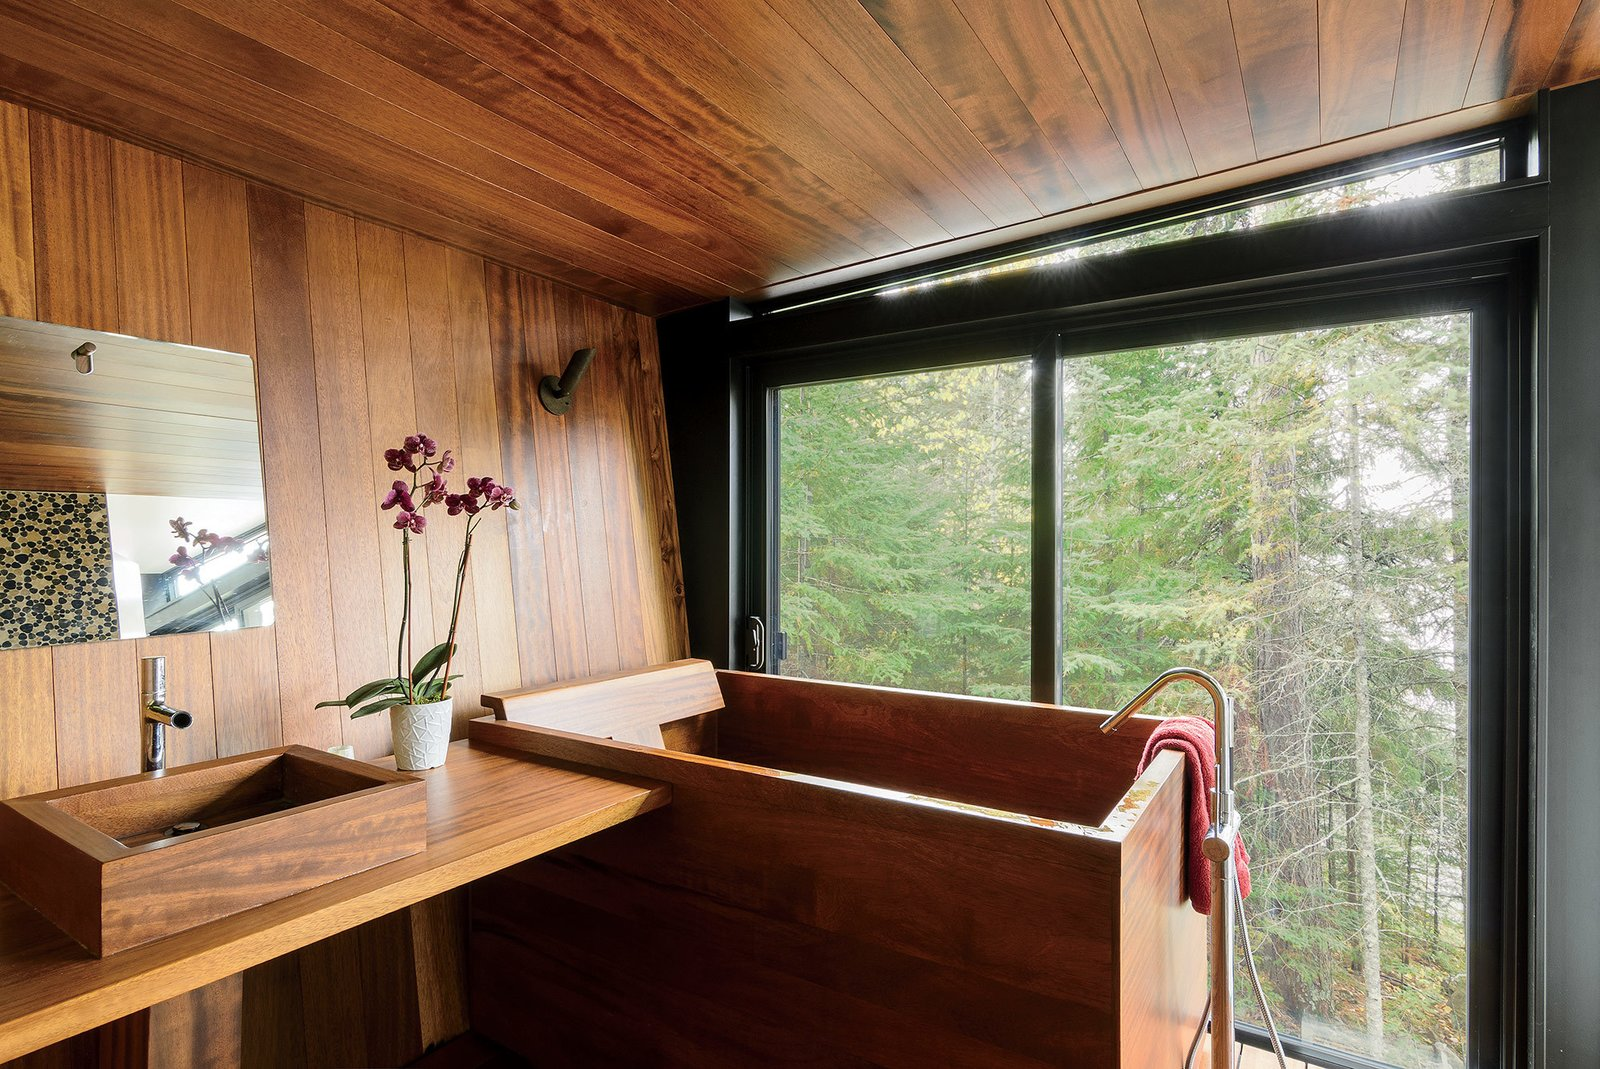 The Japanese-style bathroom, which is clad in teak, features a matching tub and sink by Bath in Wood. Tagged: Bath Room, Vessel Sink, Soaking Tub, Wood Counter, and Medium Hardwood Floor.  Photo 4 of 14 in Inspired Indoor Teak Looks from Prefab Made This Super Remote House in the Ontario Wilderness Possible